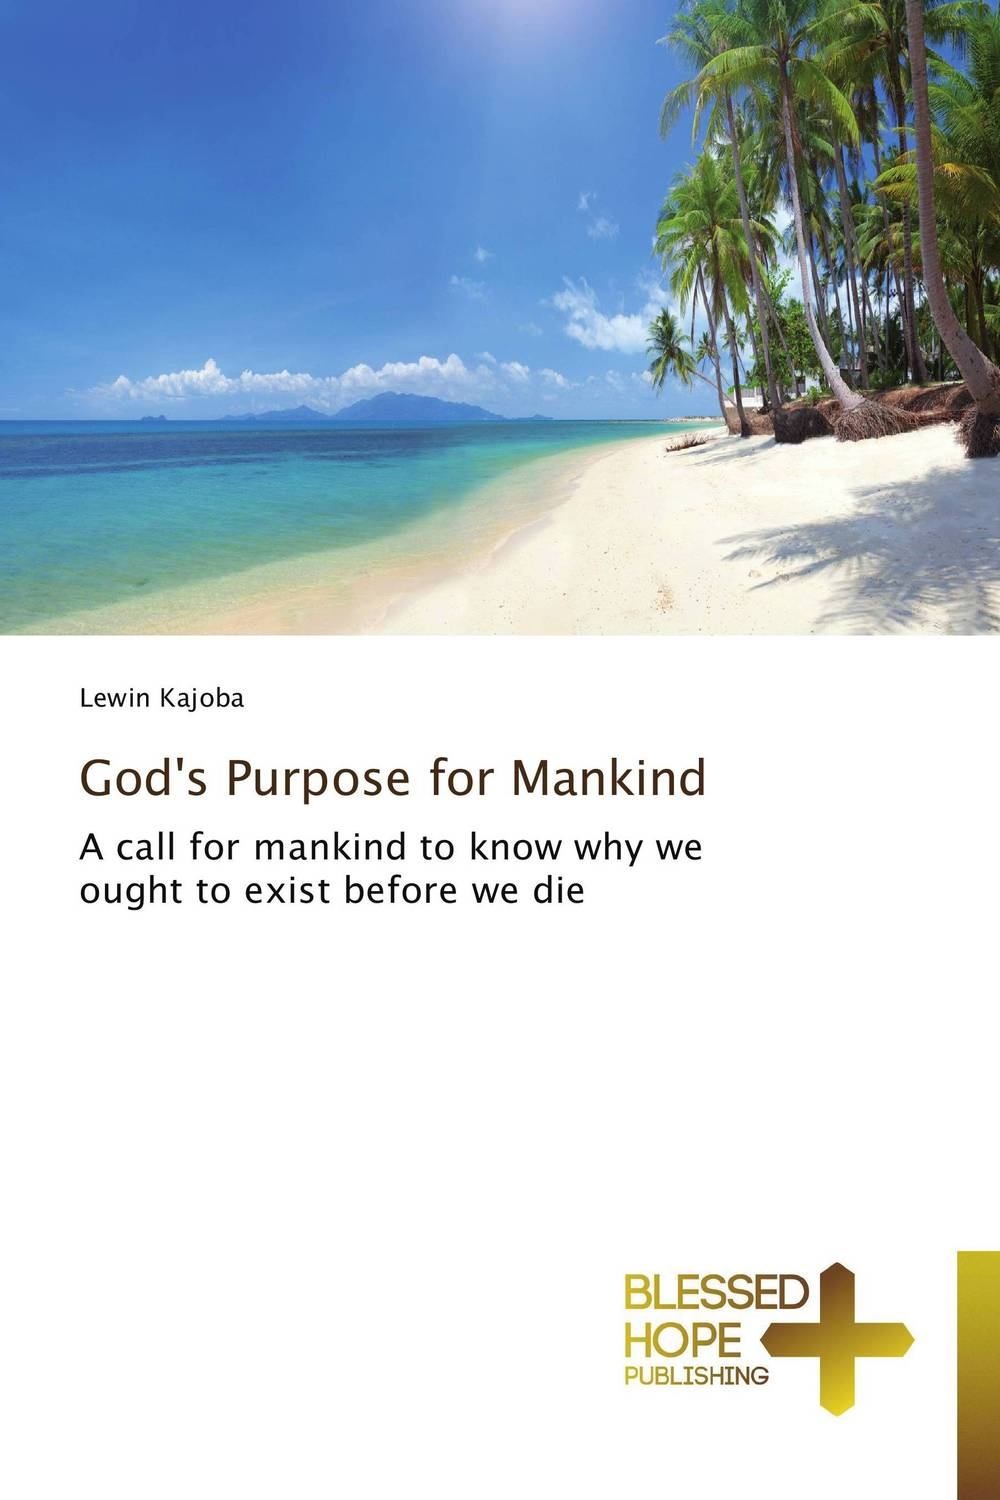 God's Purpose for Mankind